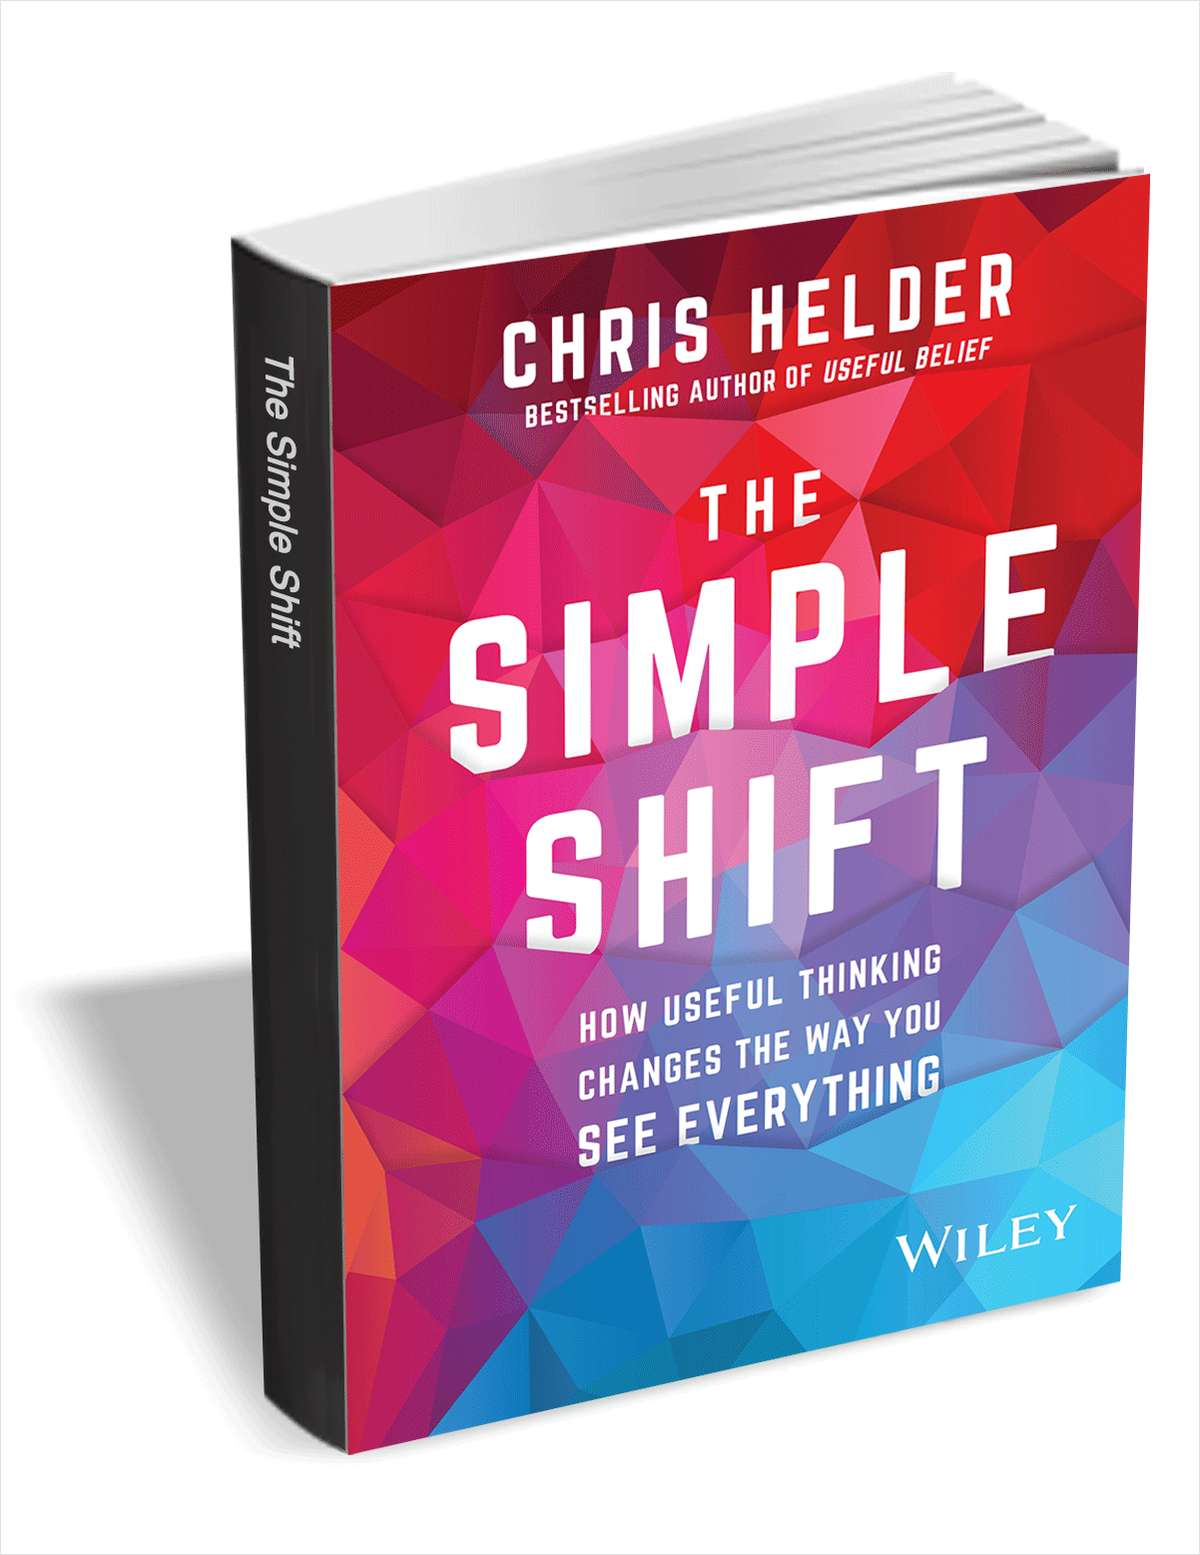 The Simple Shift: How Useful Thinking Changes the Way You See Everything ($8.00 Value) FREE for a Limited Time